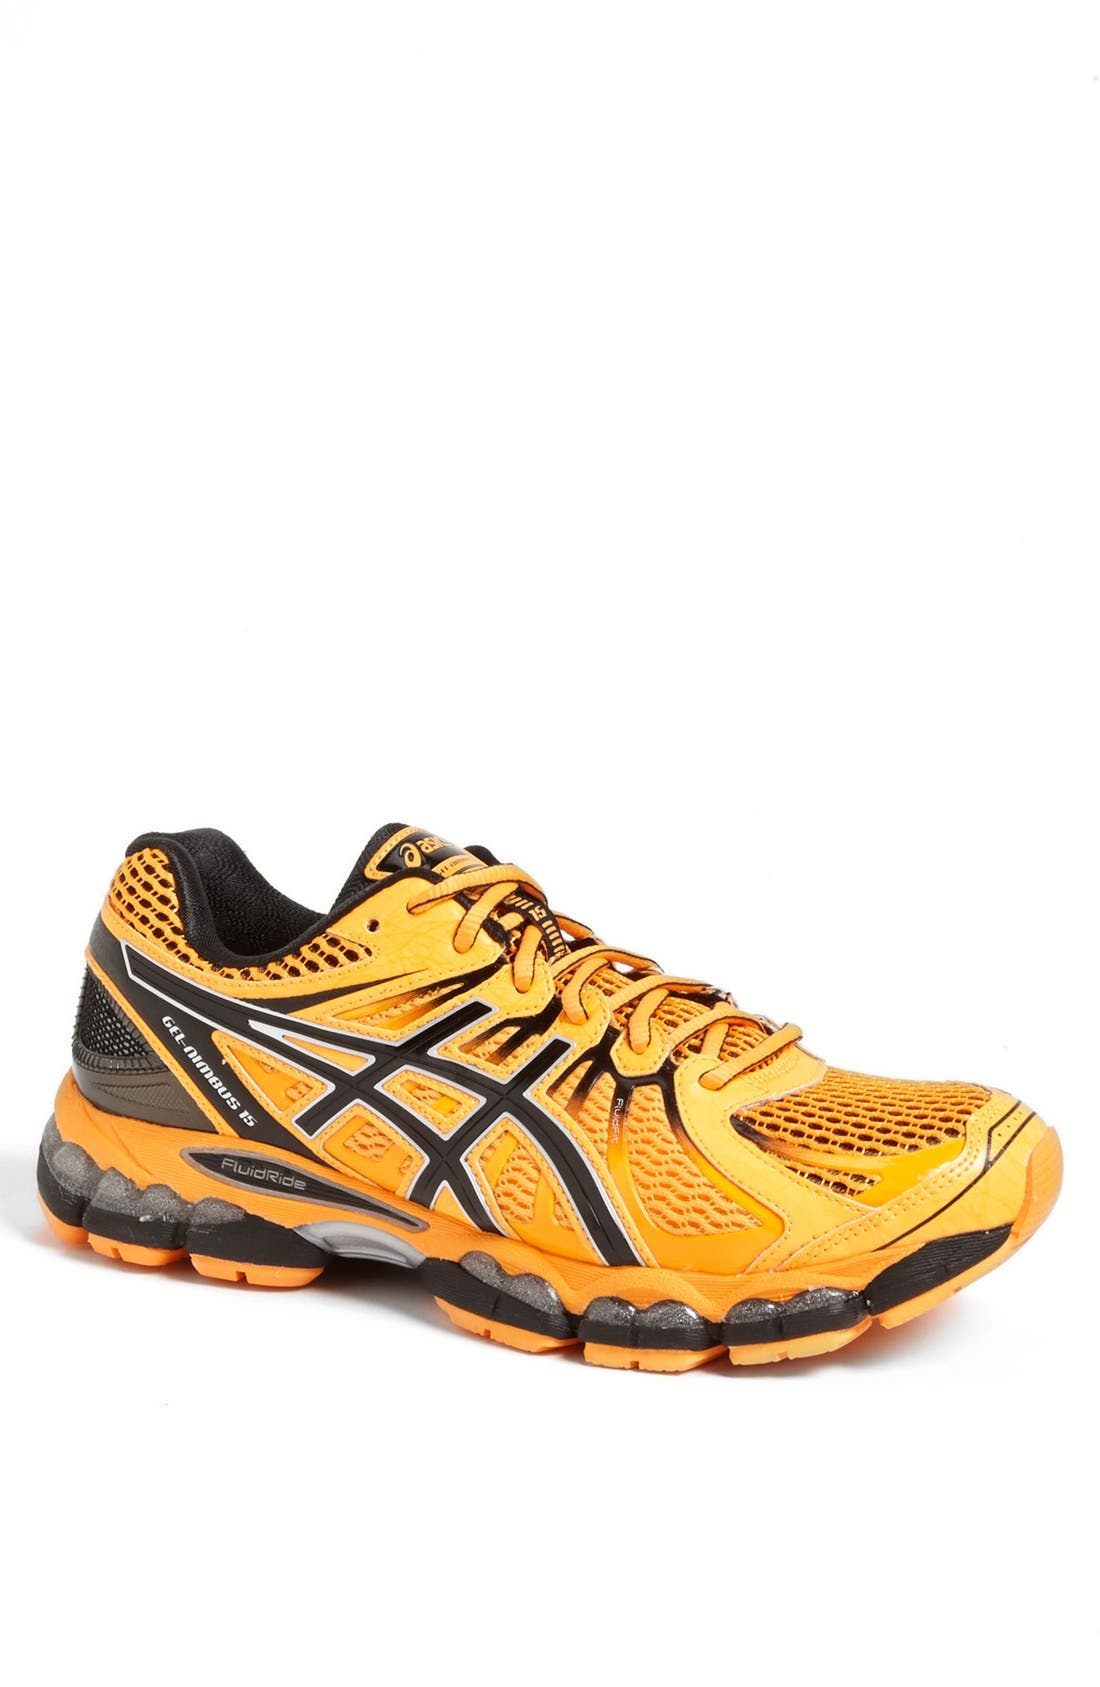 Main Image - ASICS® 'GEL-Nimbus 15' Running Shoe (Men)